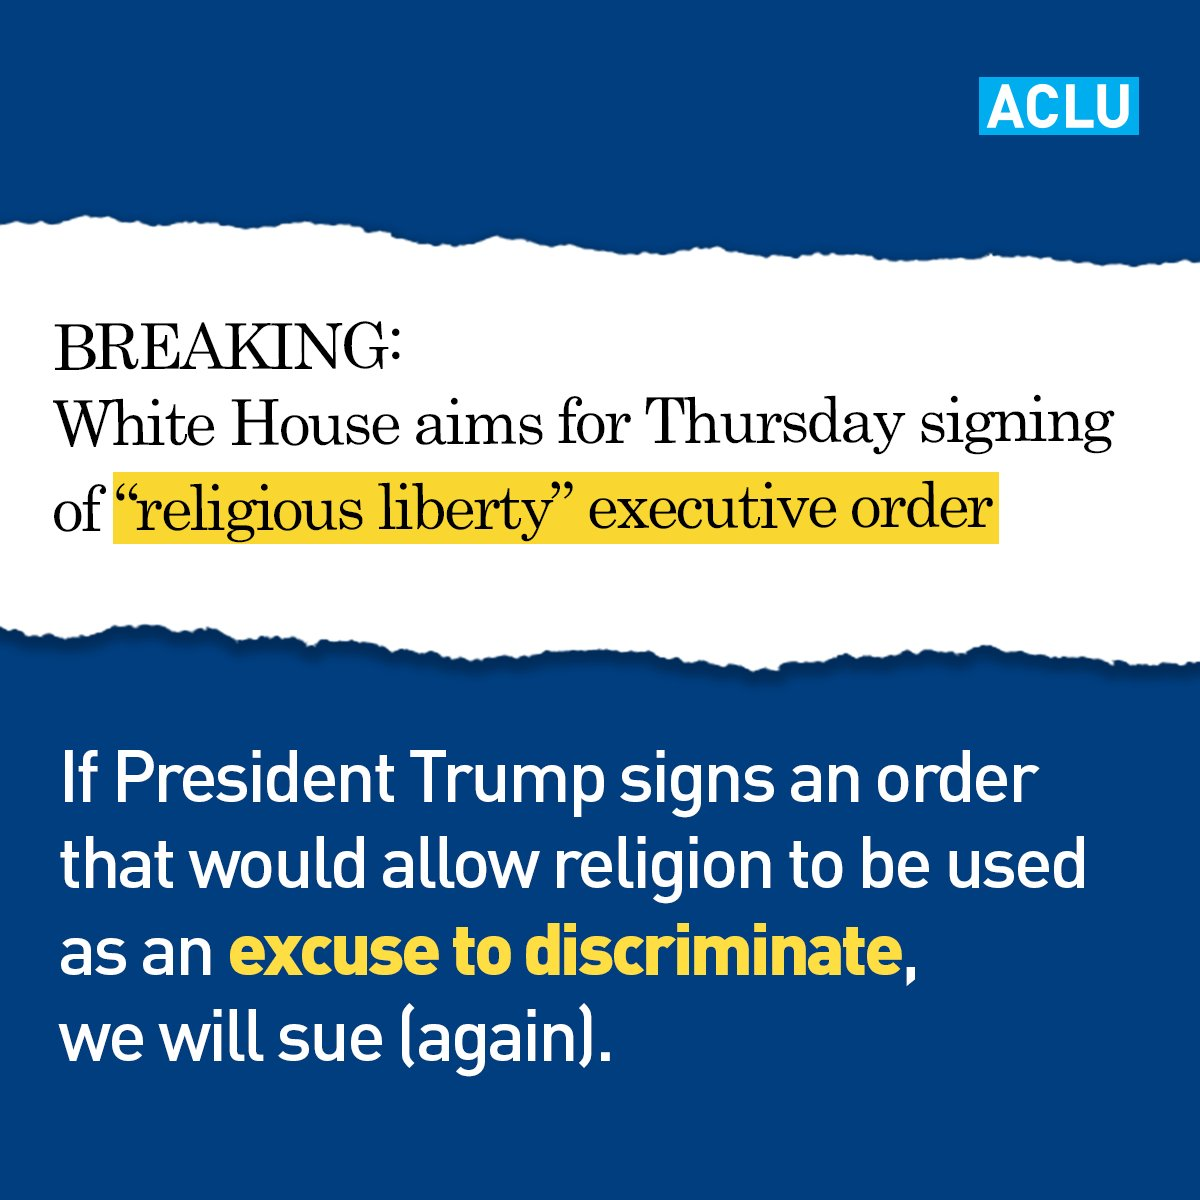 The ACLU fights every day to defend religious freedom, but religious freedom does not mean the right to discriminate against or harm others.